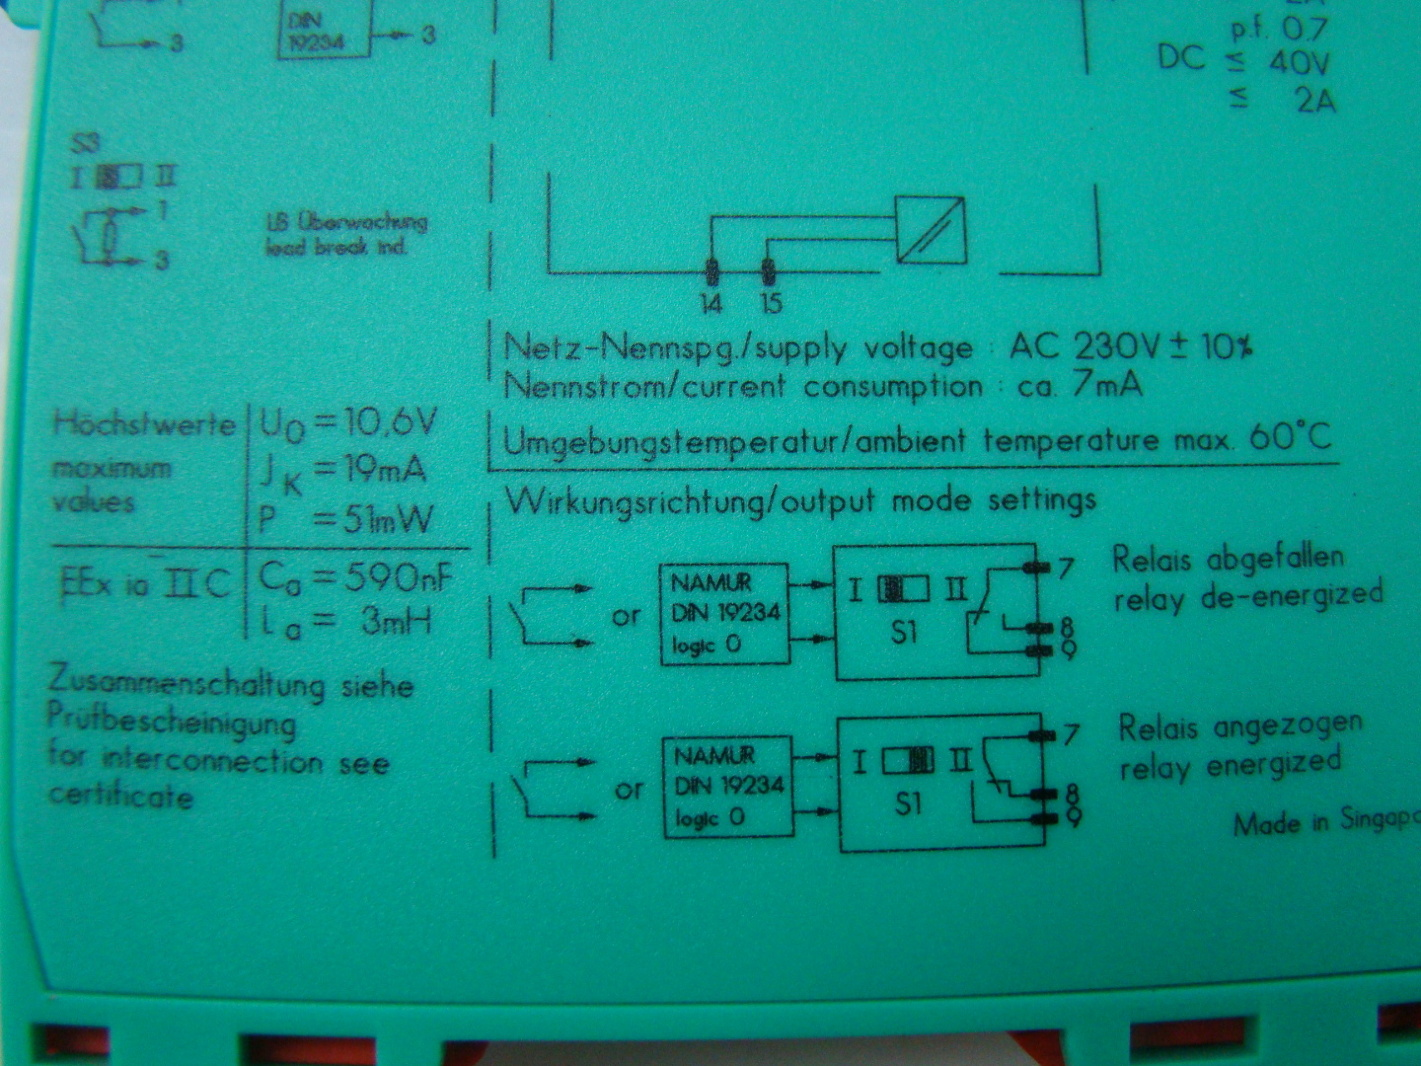 jf07188 pepperl fuchs isolated switch amplifier kfa6 sr2 ex1w 11 pepperl fuchs isolated switch amplifier kfa6 sr2 ex1 w ebay kfd2-sr2-ex1.w wiring diagram at love-stories.co